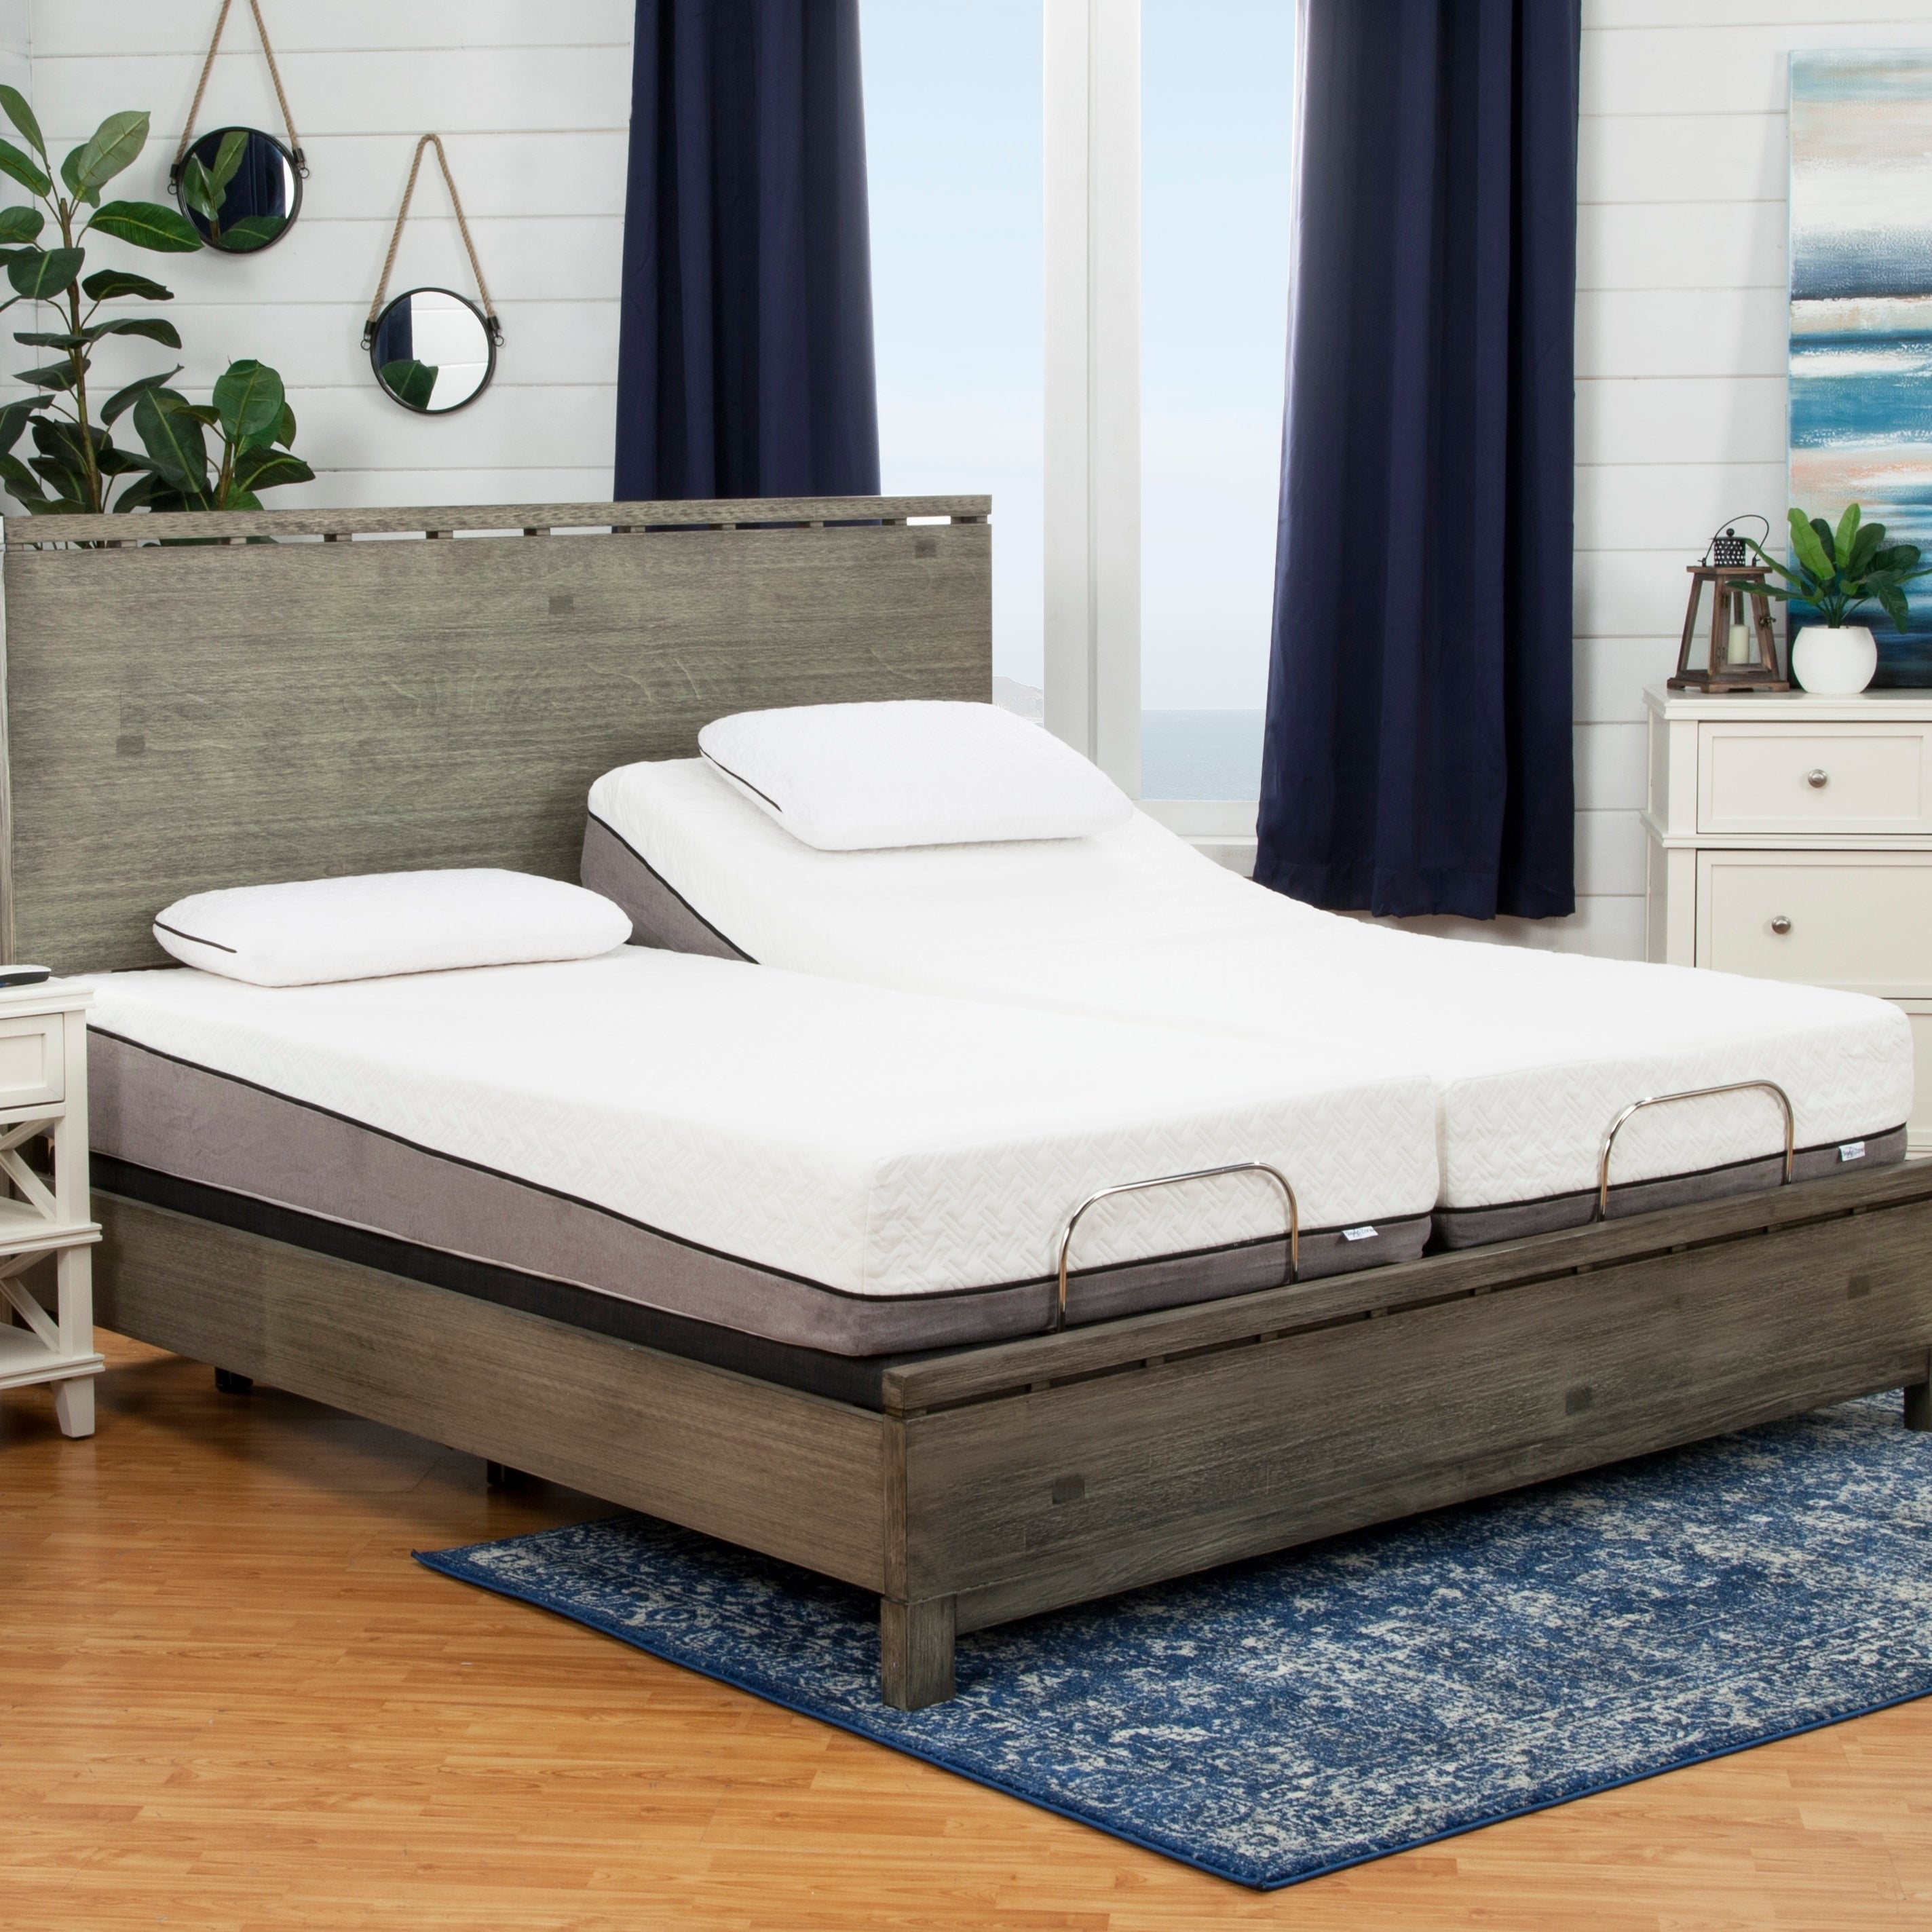 Shop sleep zone huntington 10 inch split king size memory foam mattress and adjustable bed set free shipping today overstock com 15923787